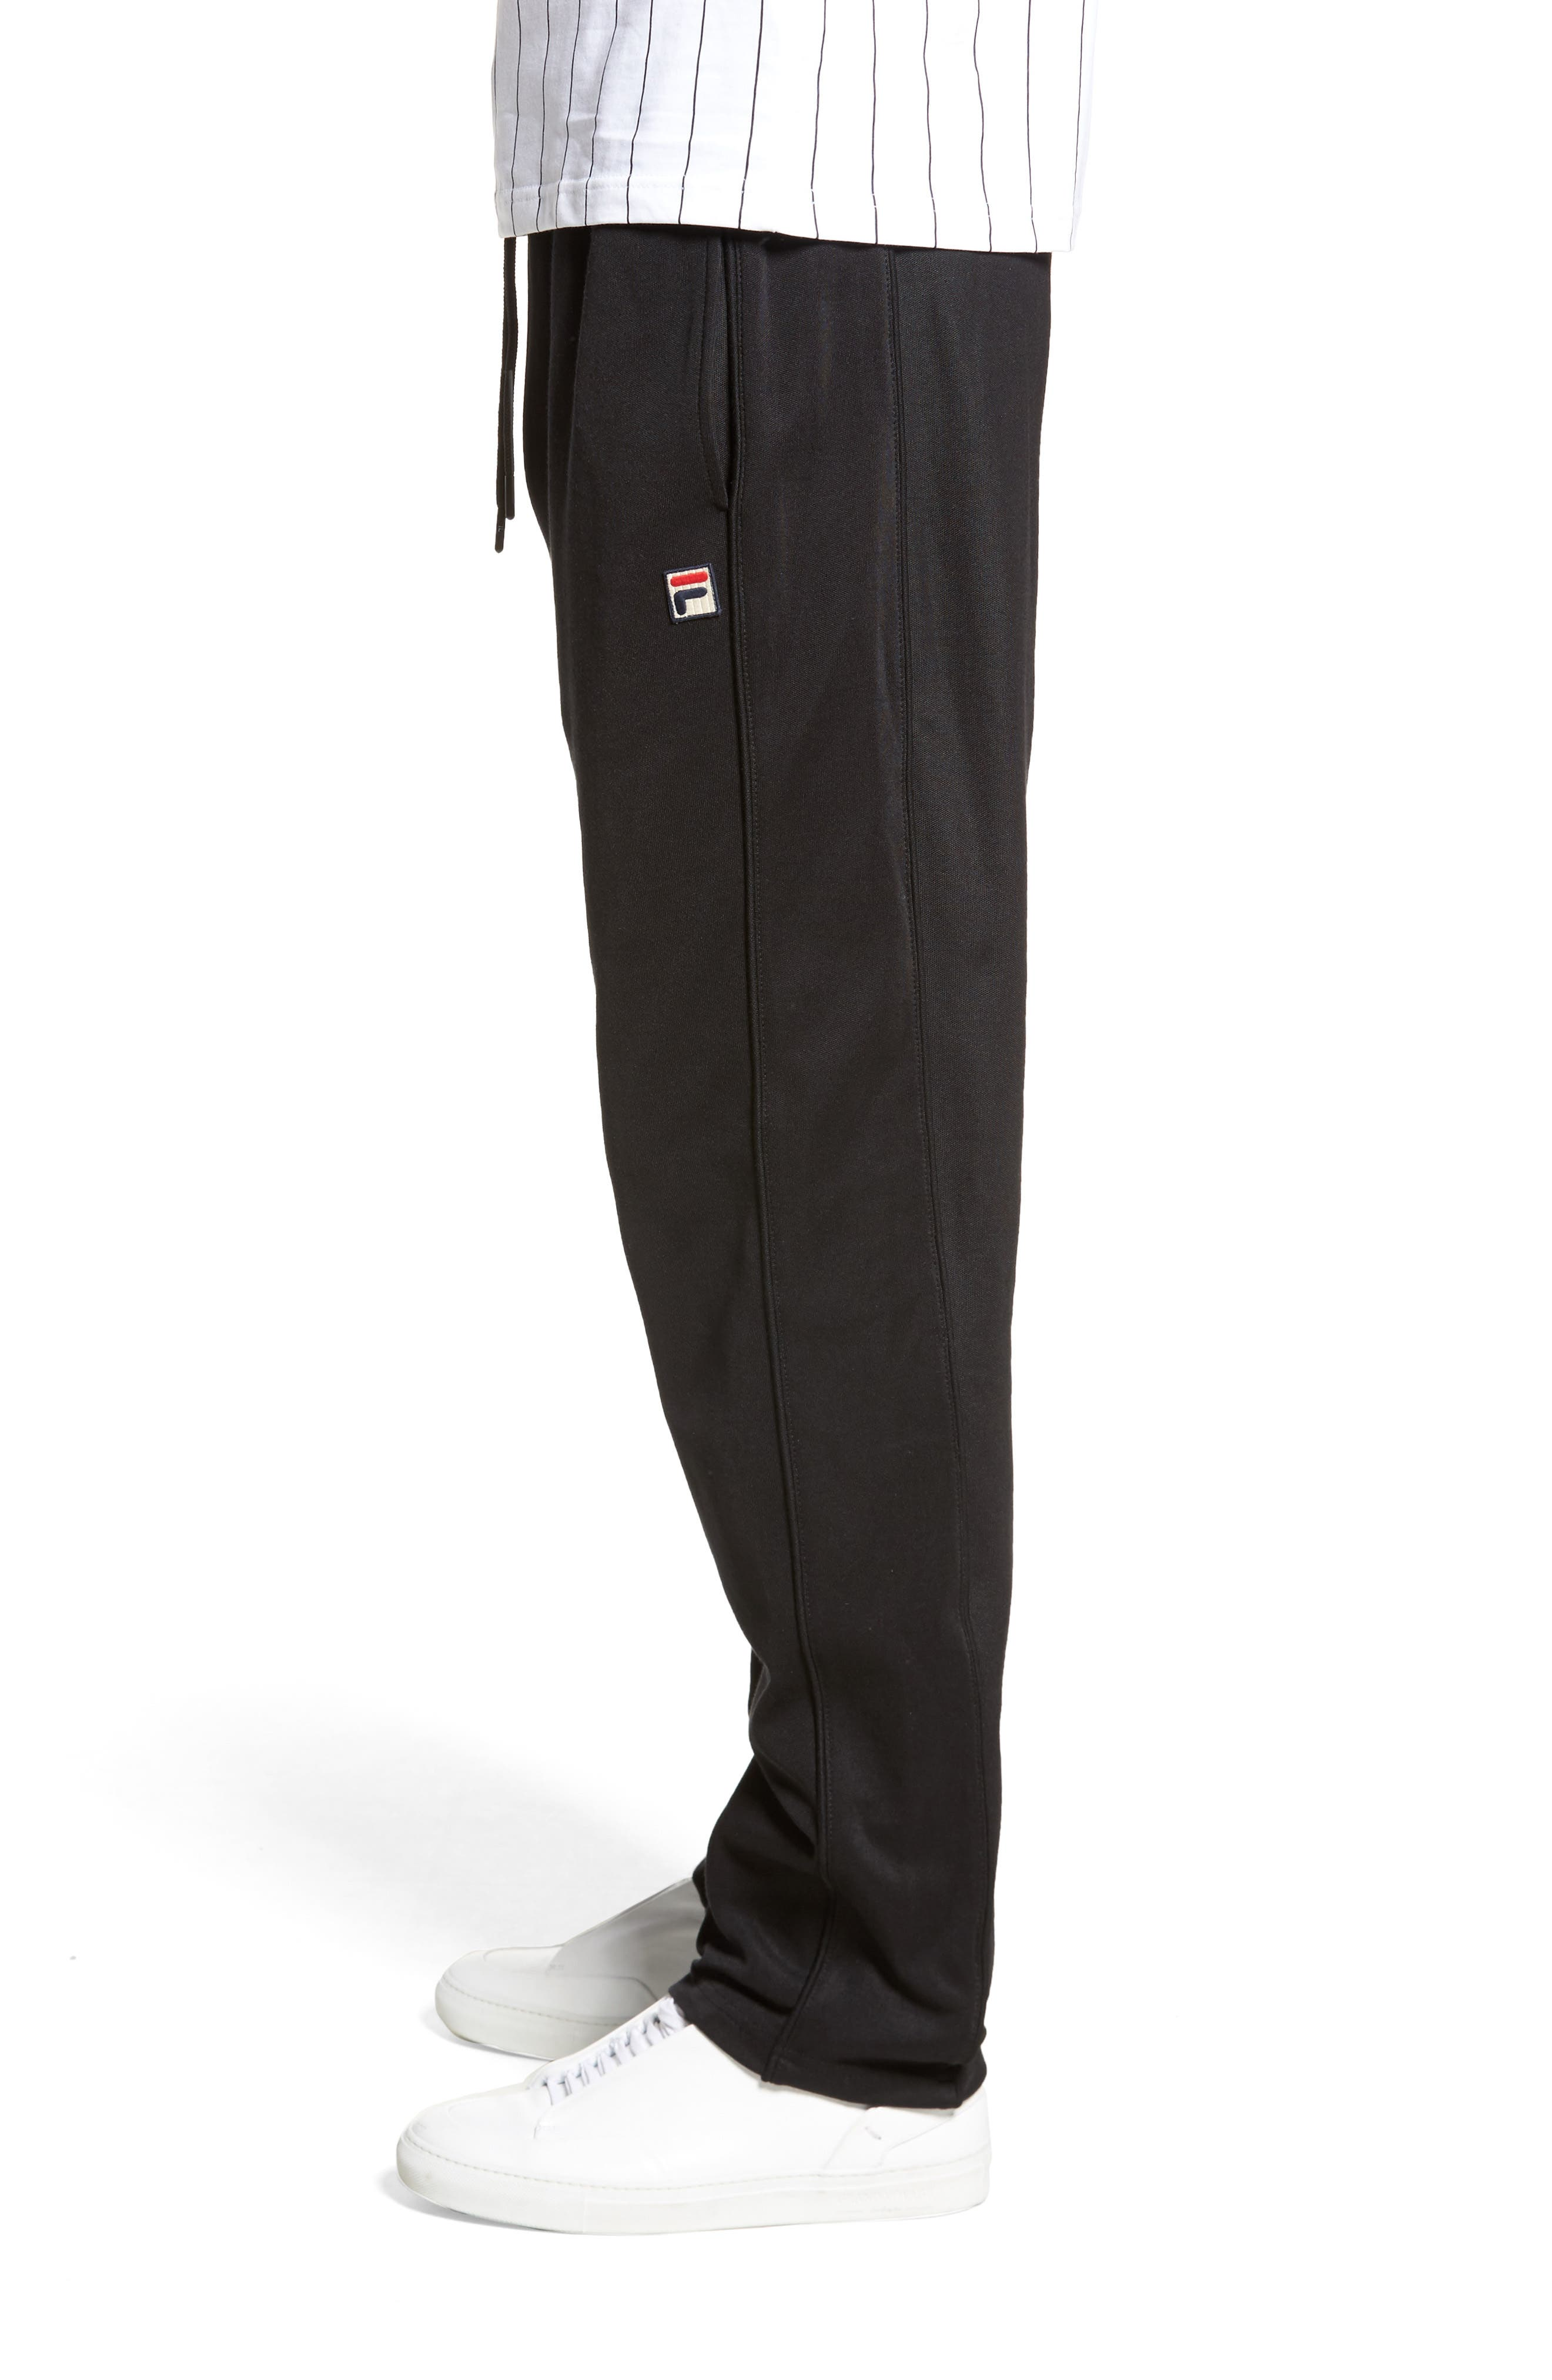 Bianchi Pants,                             Alternate thumbnail 3, color,                             Black